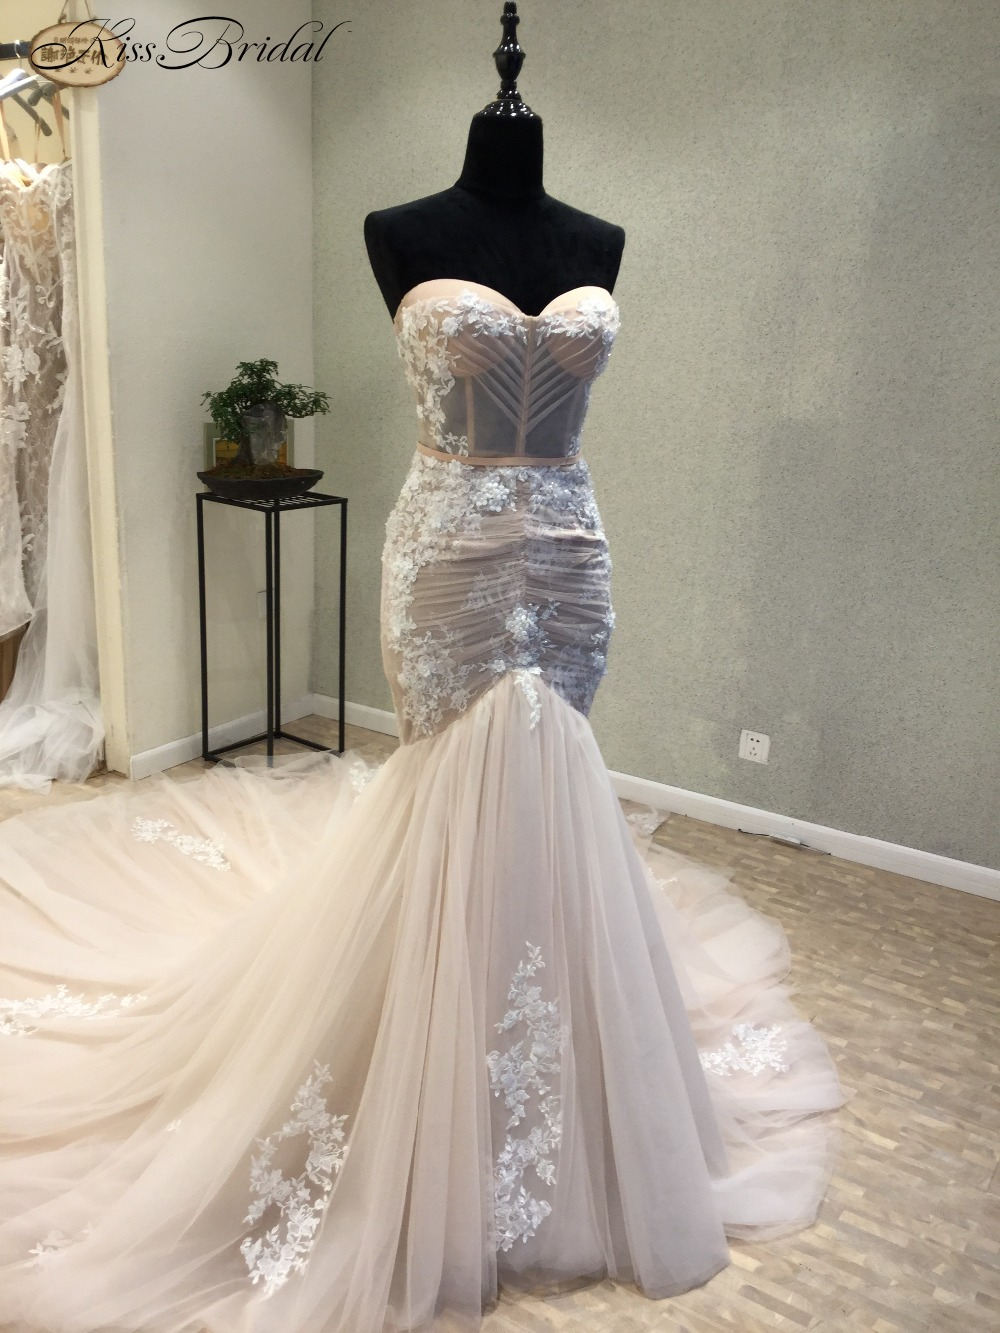 Sexy new mermaid wedding dresses 2018 sweetheart off Wedding dress themes 2018